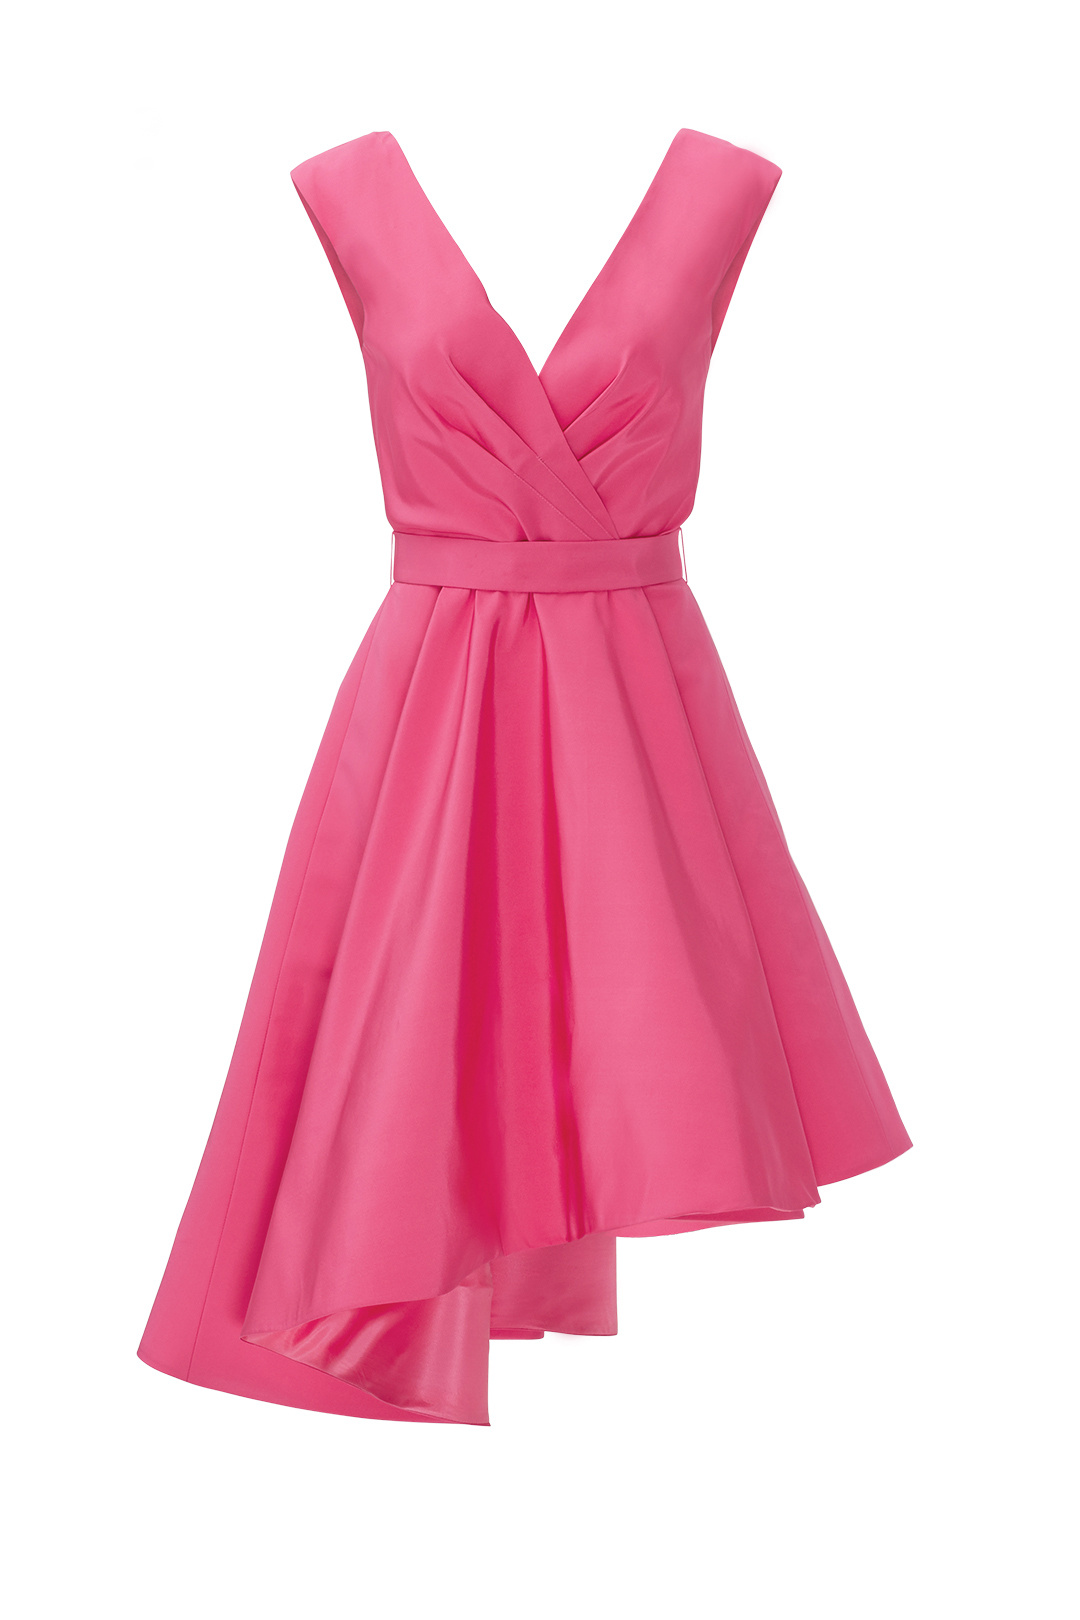 Christian Siriano Pink Pleated Aysmmetrical Women\'s 6 A-Line Dress ...